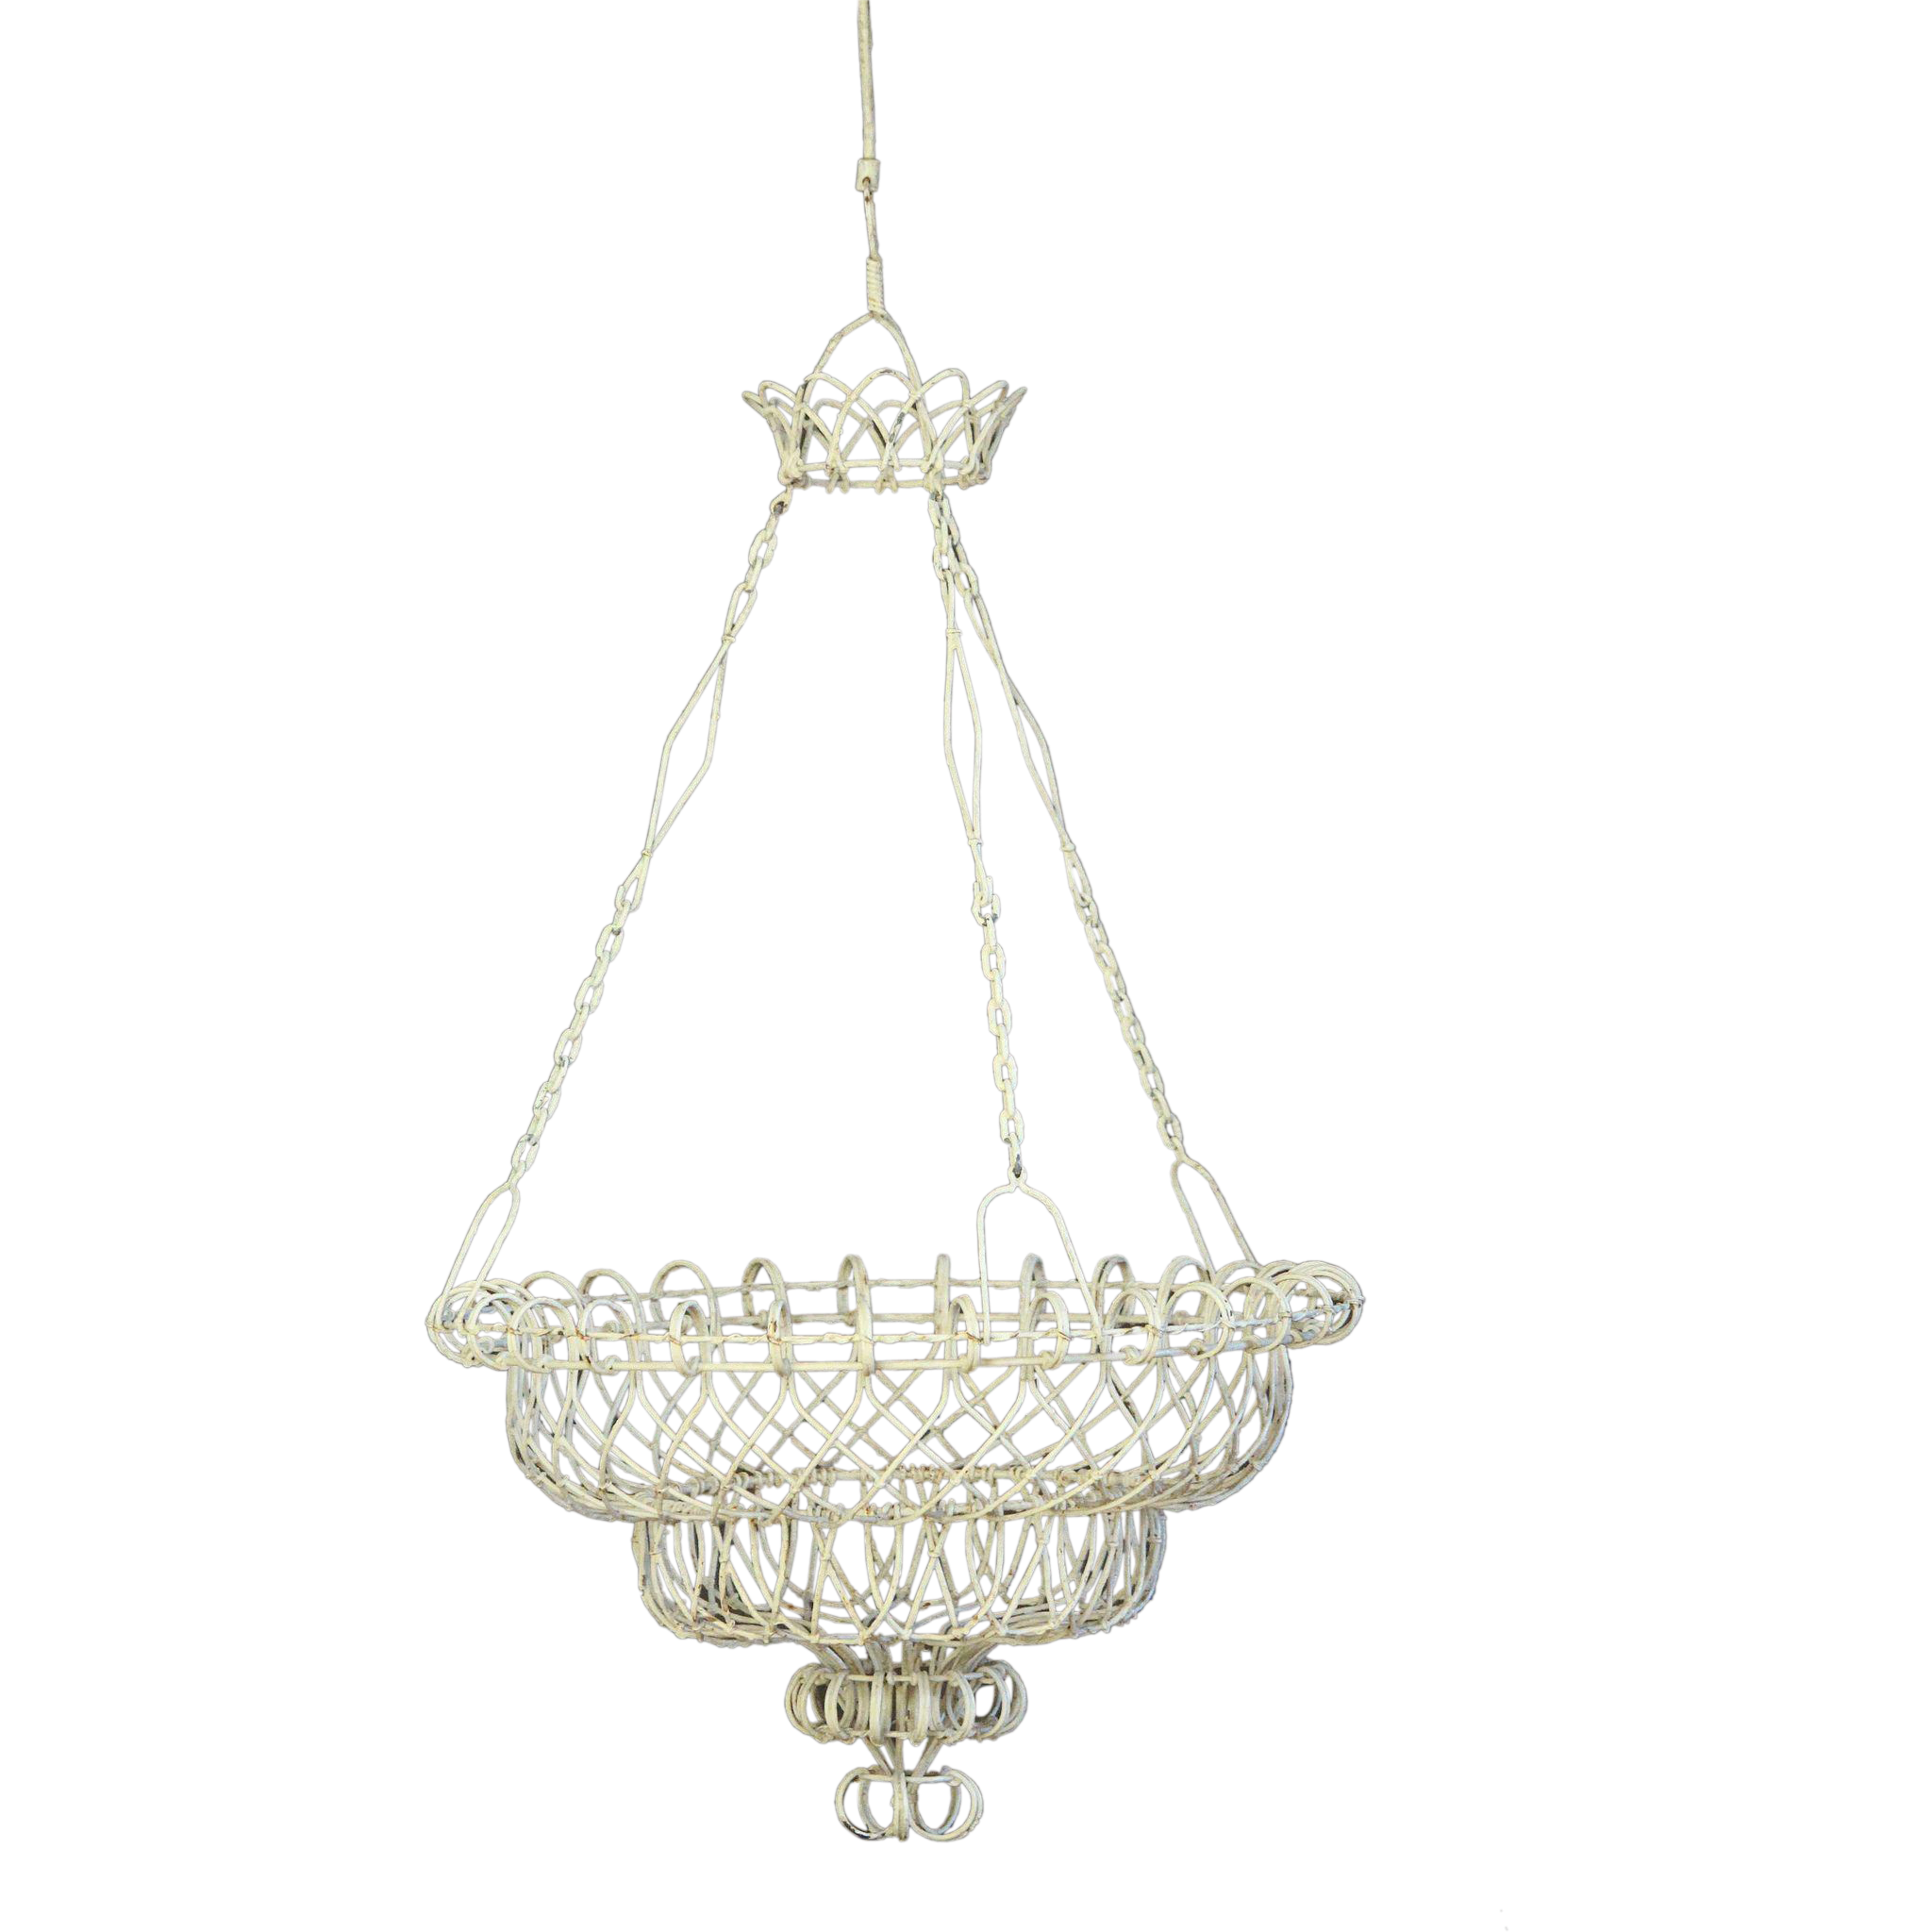 Antique French LARGE Hanging Wire Flower Basket / Planter- Wirework  English And French Country Antiques | Ruby Lane  sc 1 st  Ruby Lane & Antique French LARGE Hanging Wire Flower Basket / Planter- Wirework ...